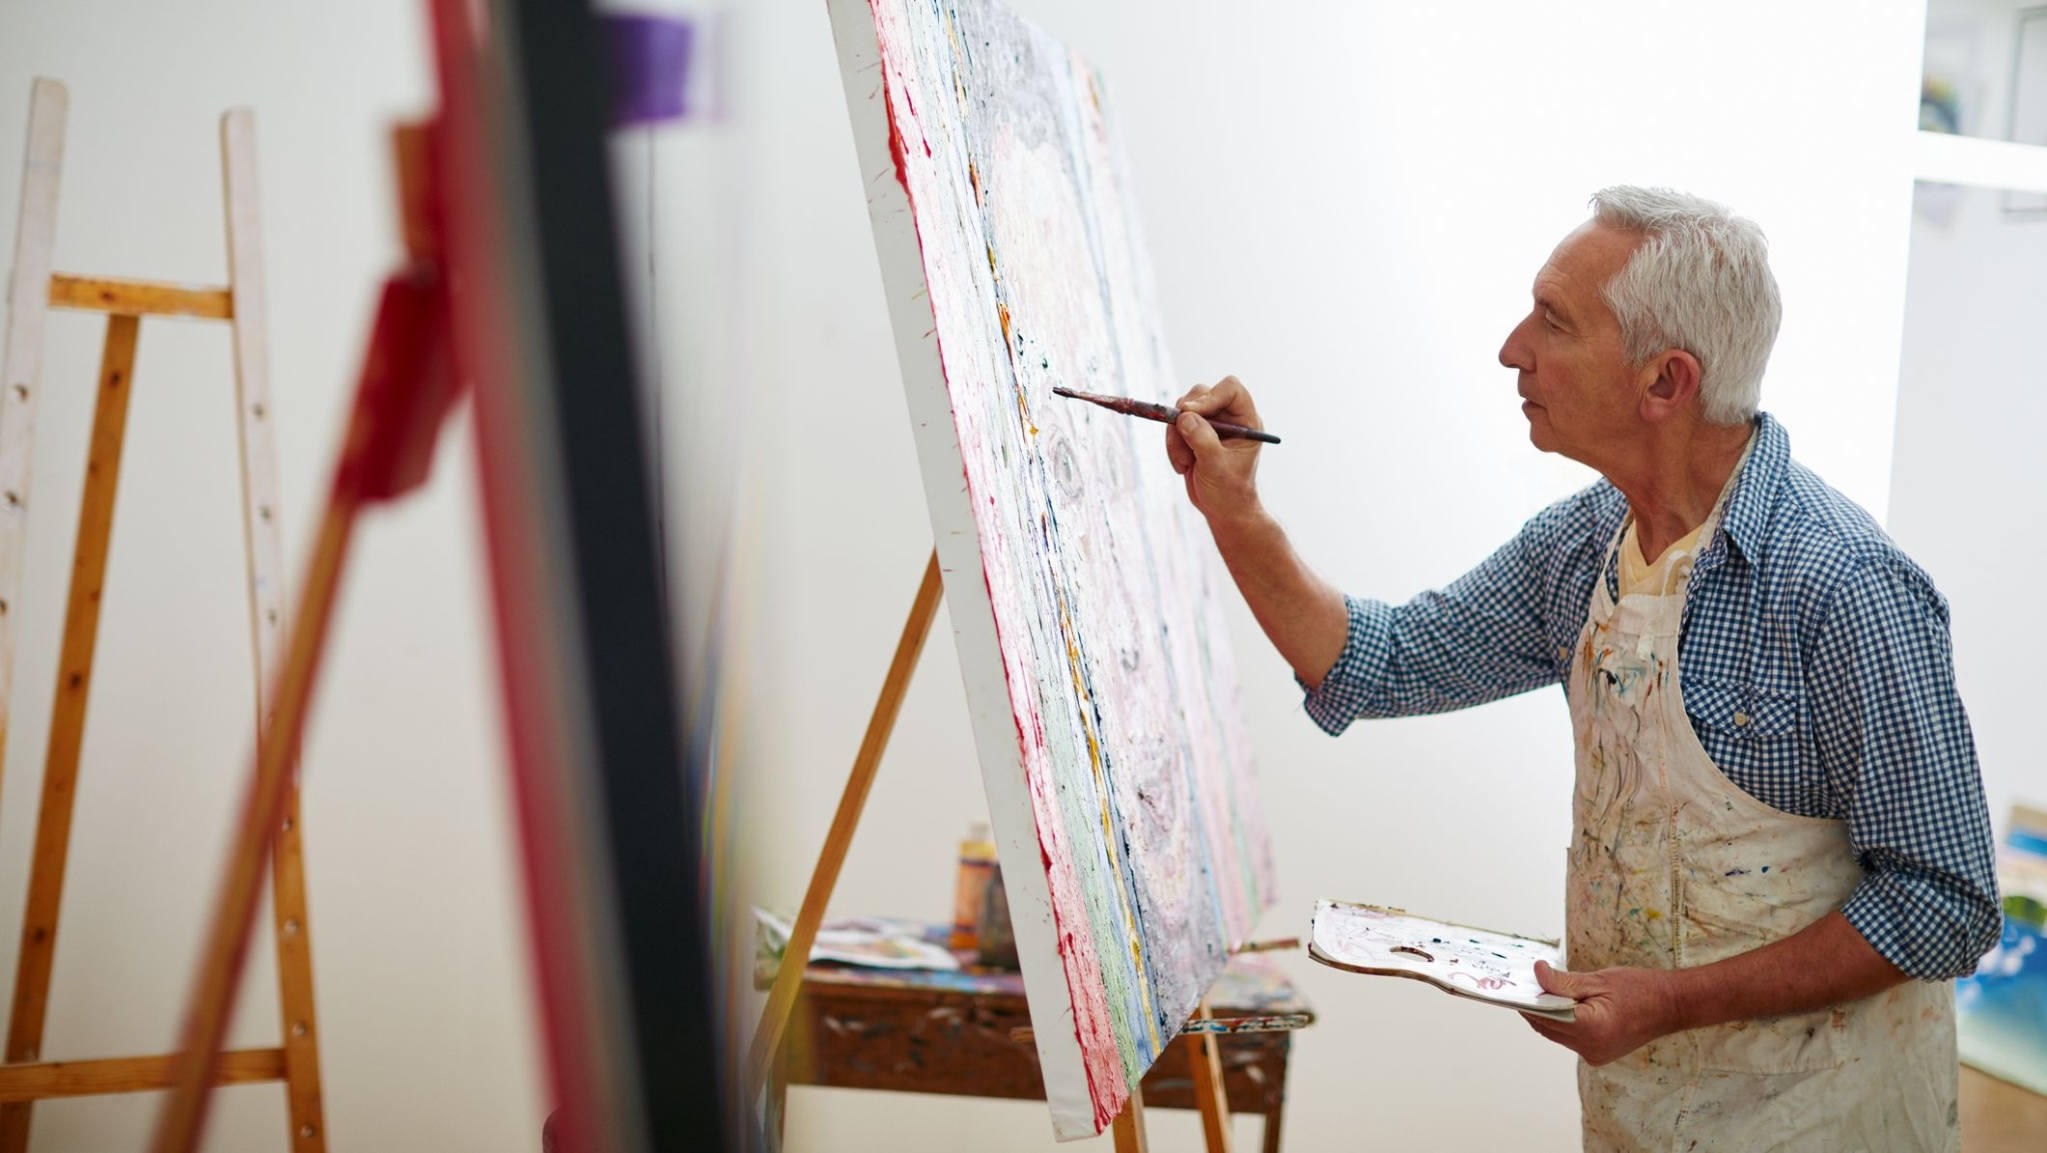 Drawing Better Than Writing for Retaining Memory For Older Adults